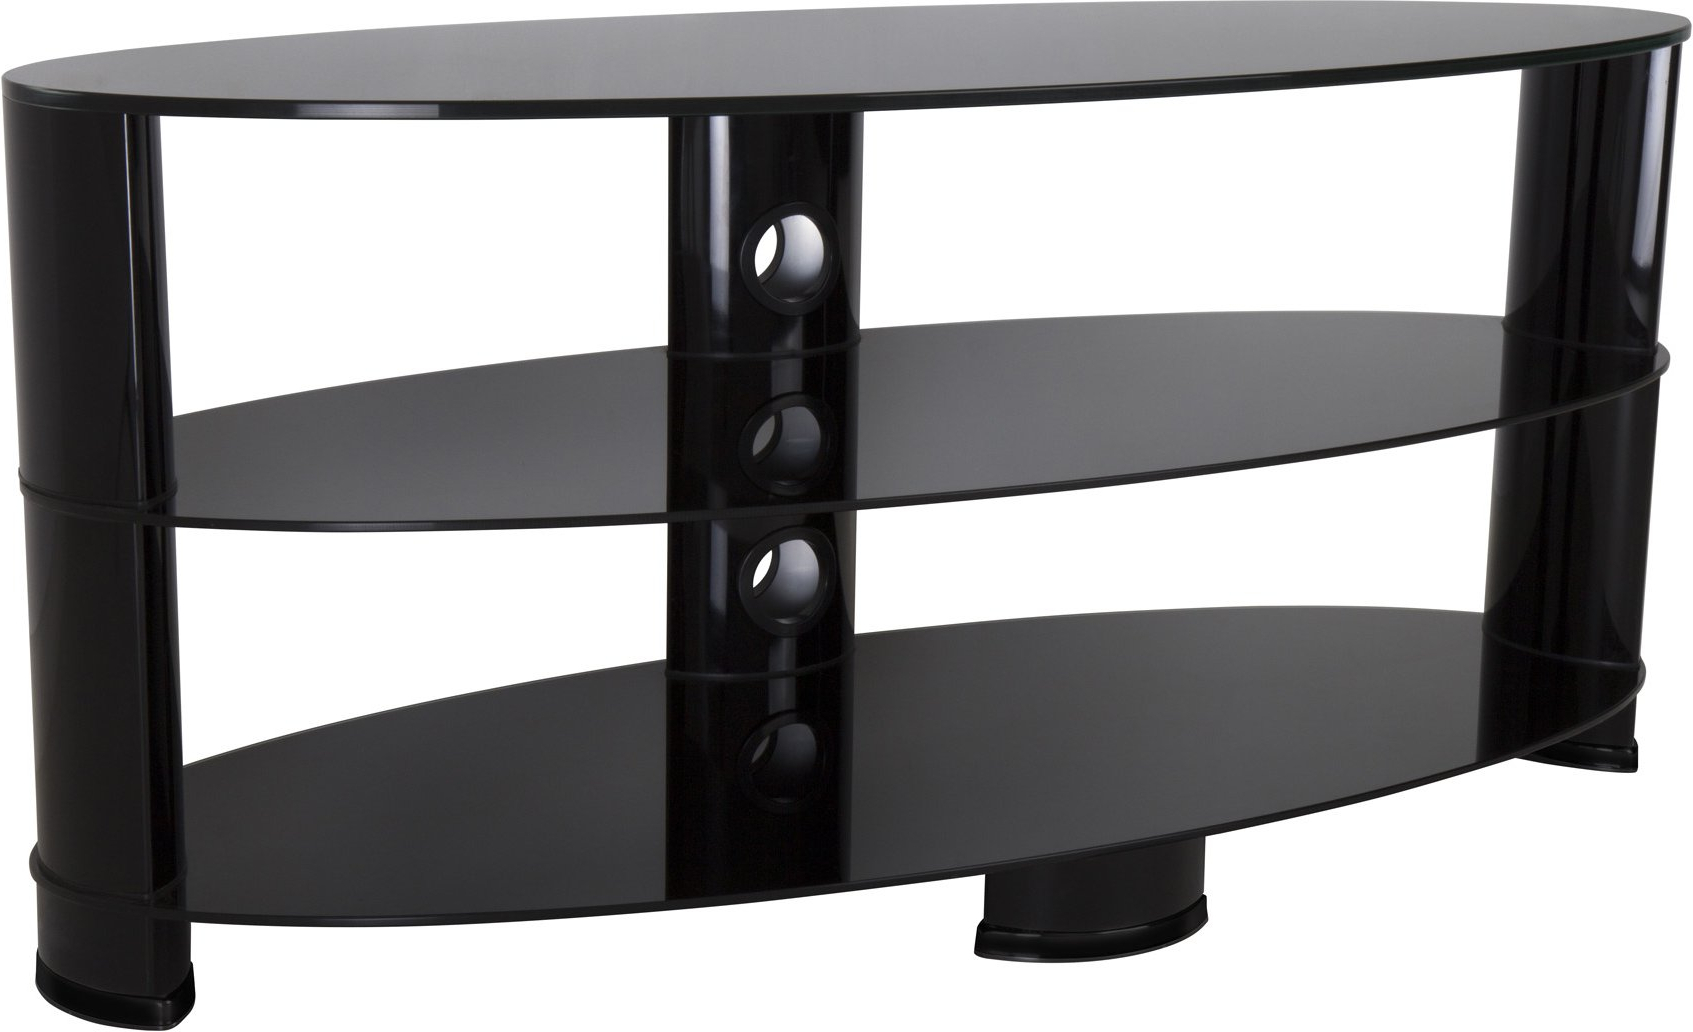 """Avf Ovl1200bb Oval Glass Tv Stand For Tvs Up To 55 Inch Inside Glass Shelves Tv Stands For Tvs Up To 50"""" (View 6 of 20)"""